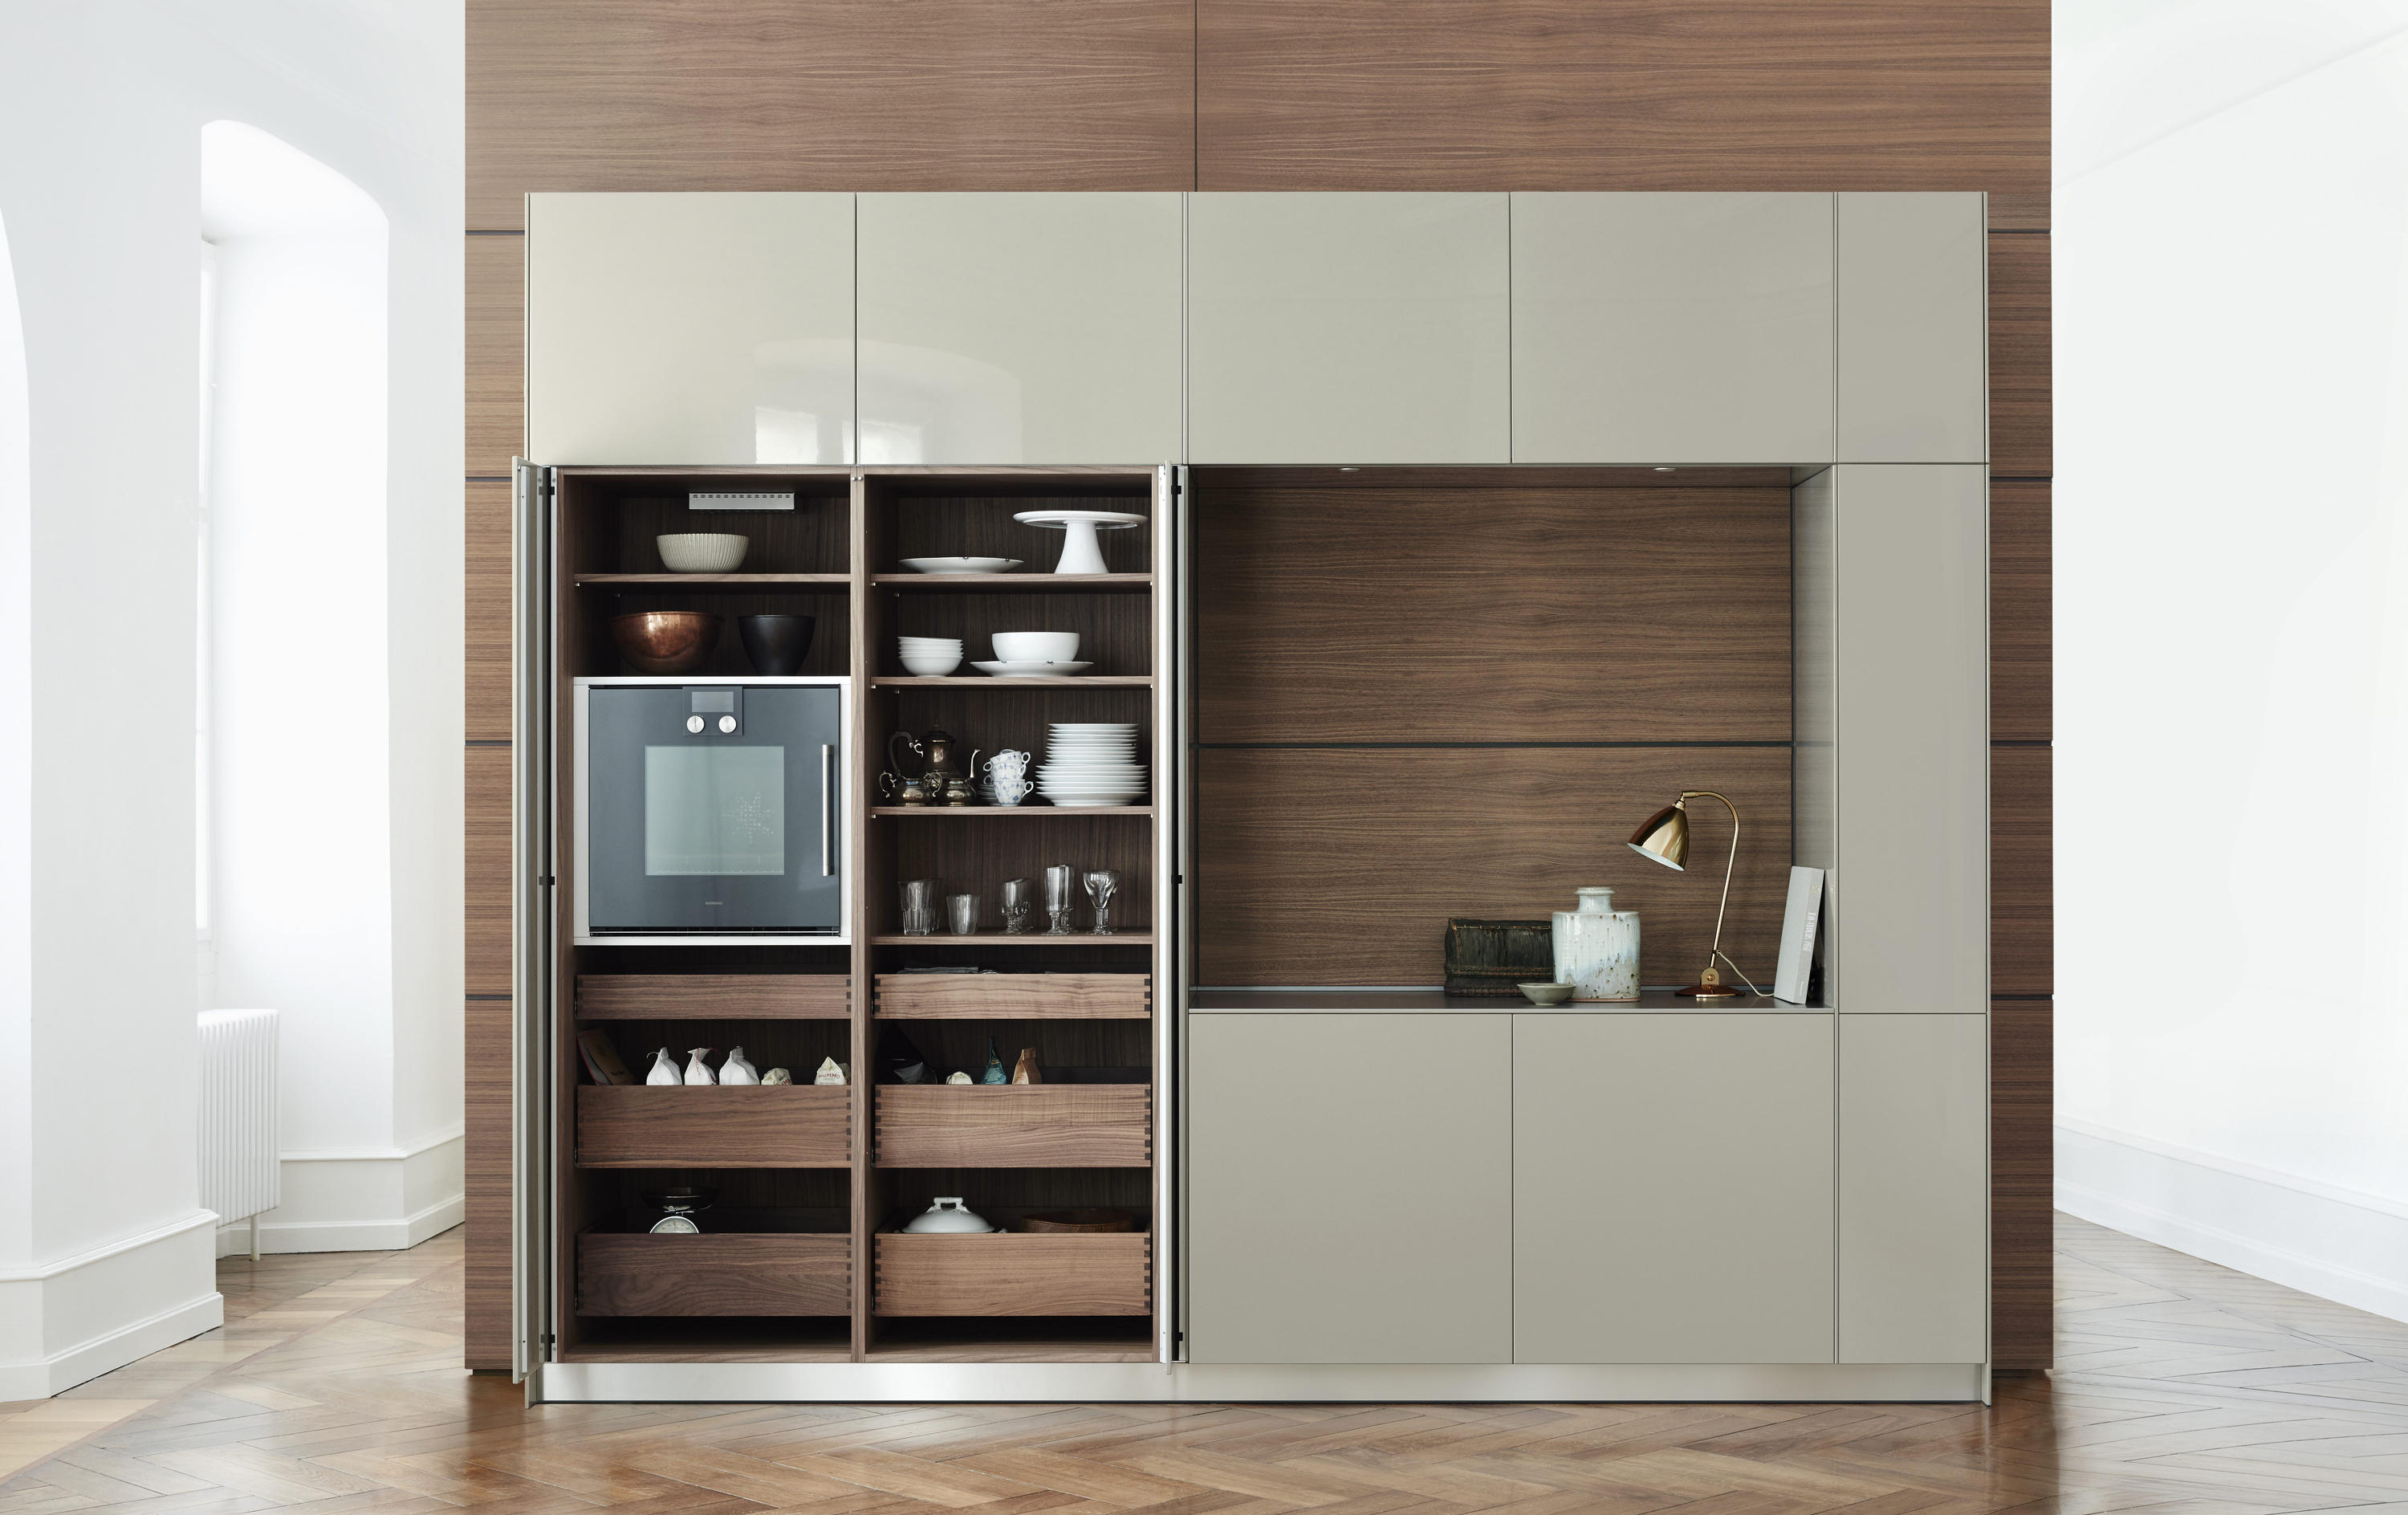 B3 pocket door unit kitchen cabinets from bulthaup for Bulthaup kitchen cabinets